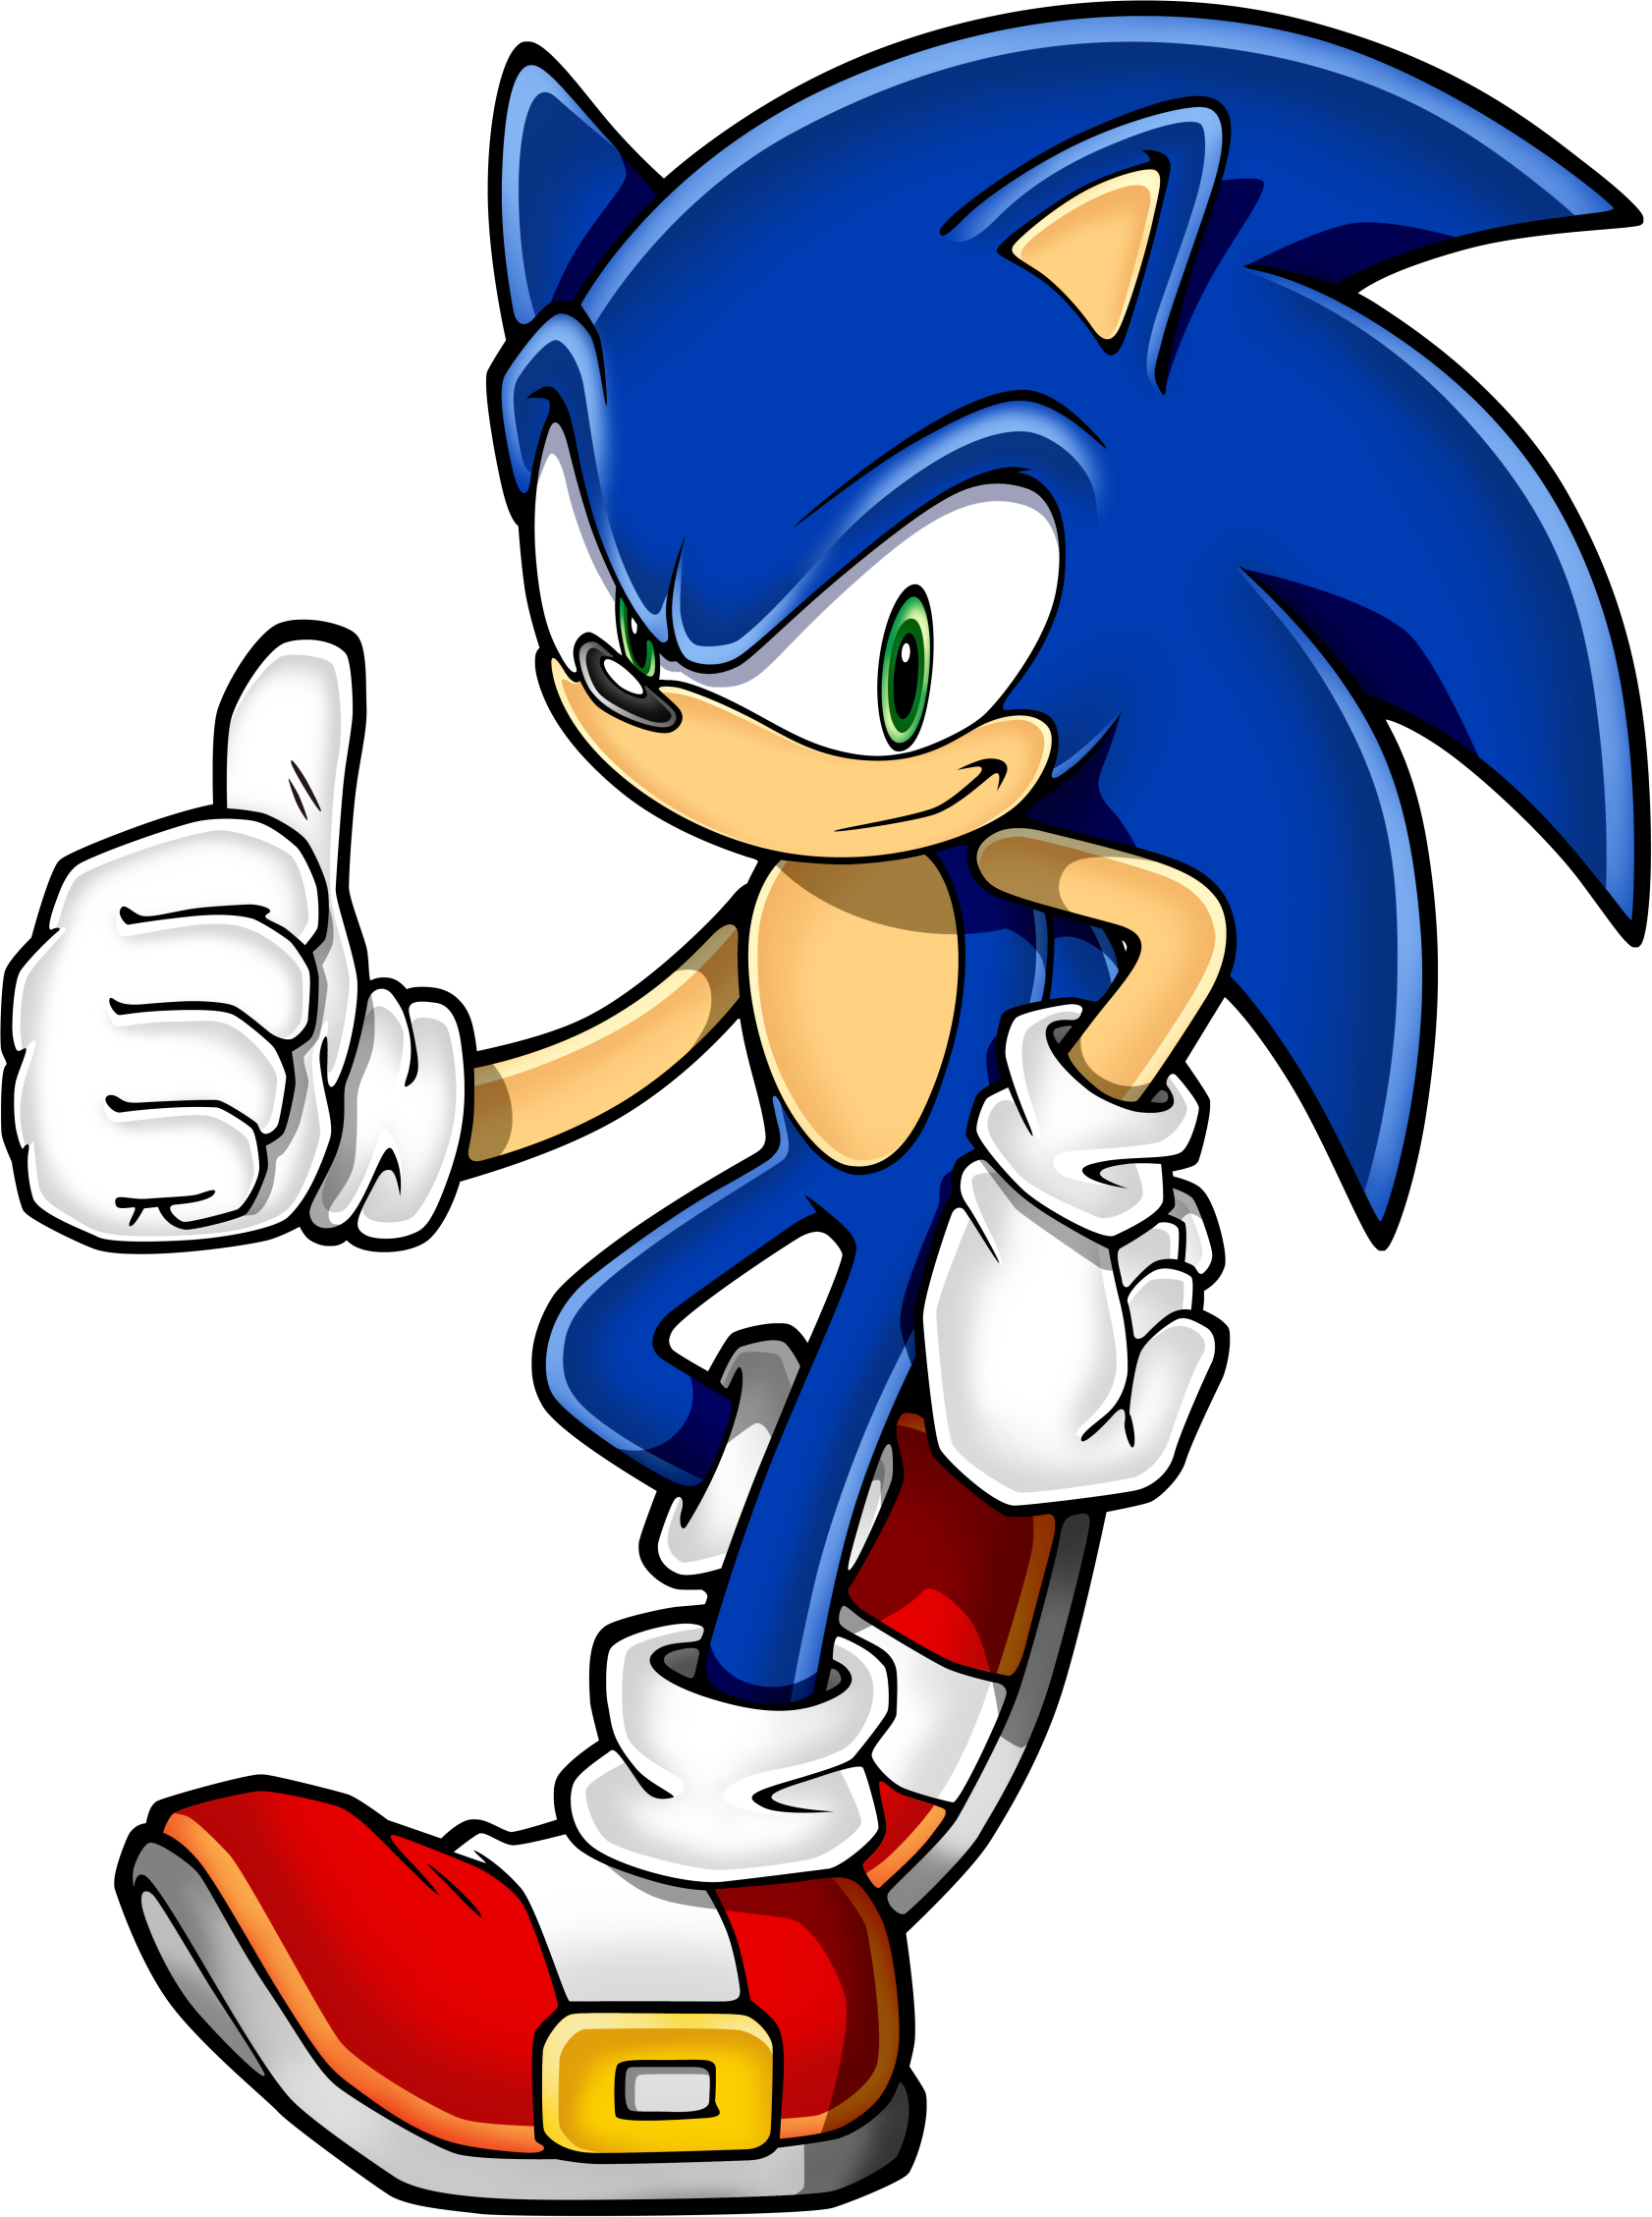 Image - Sonic Art Assets DVD - Sonic The Hedgehog - 6.png | Sonic News  Network | FANDOM powered by Wikia - Sonic The Hedgehog PNG